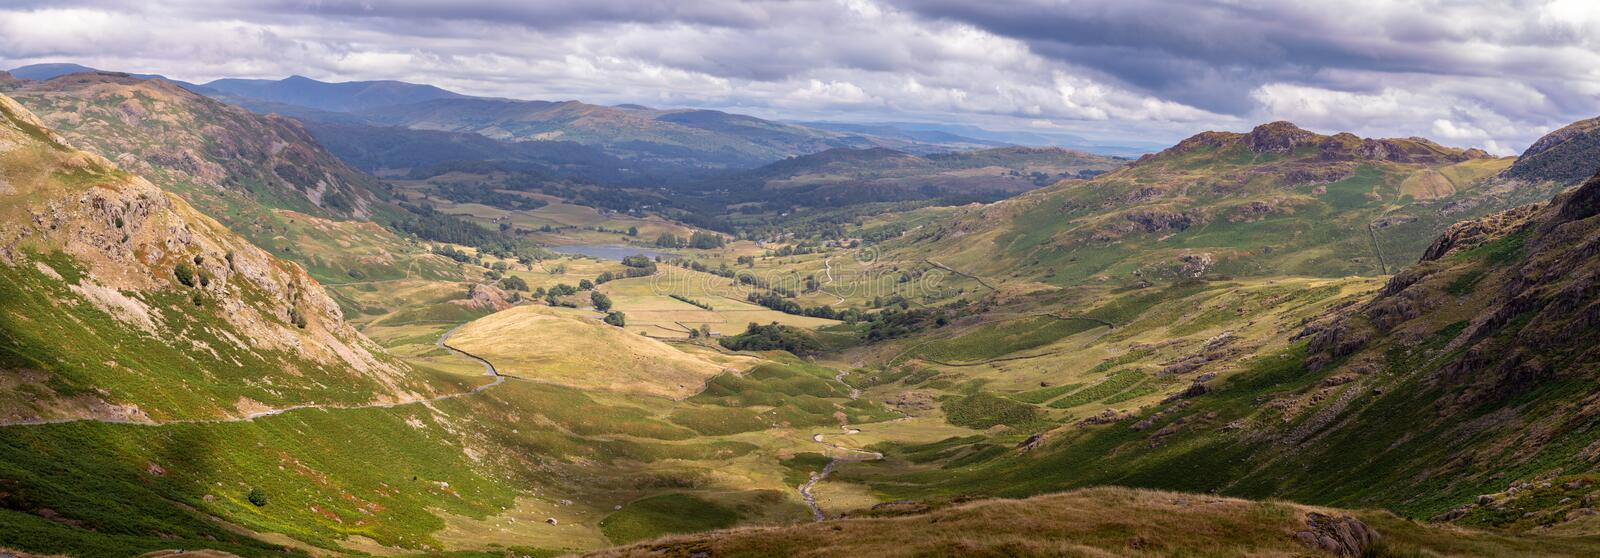 Stunning scenic view from Wrynose Pass in Cumbria, Lake District stock photo